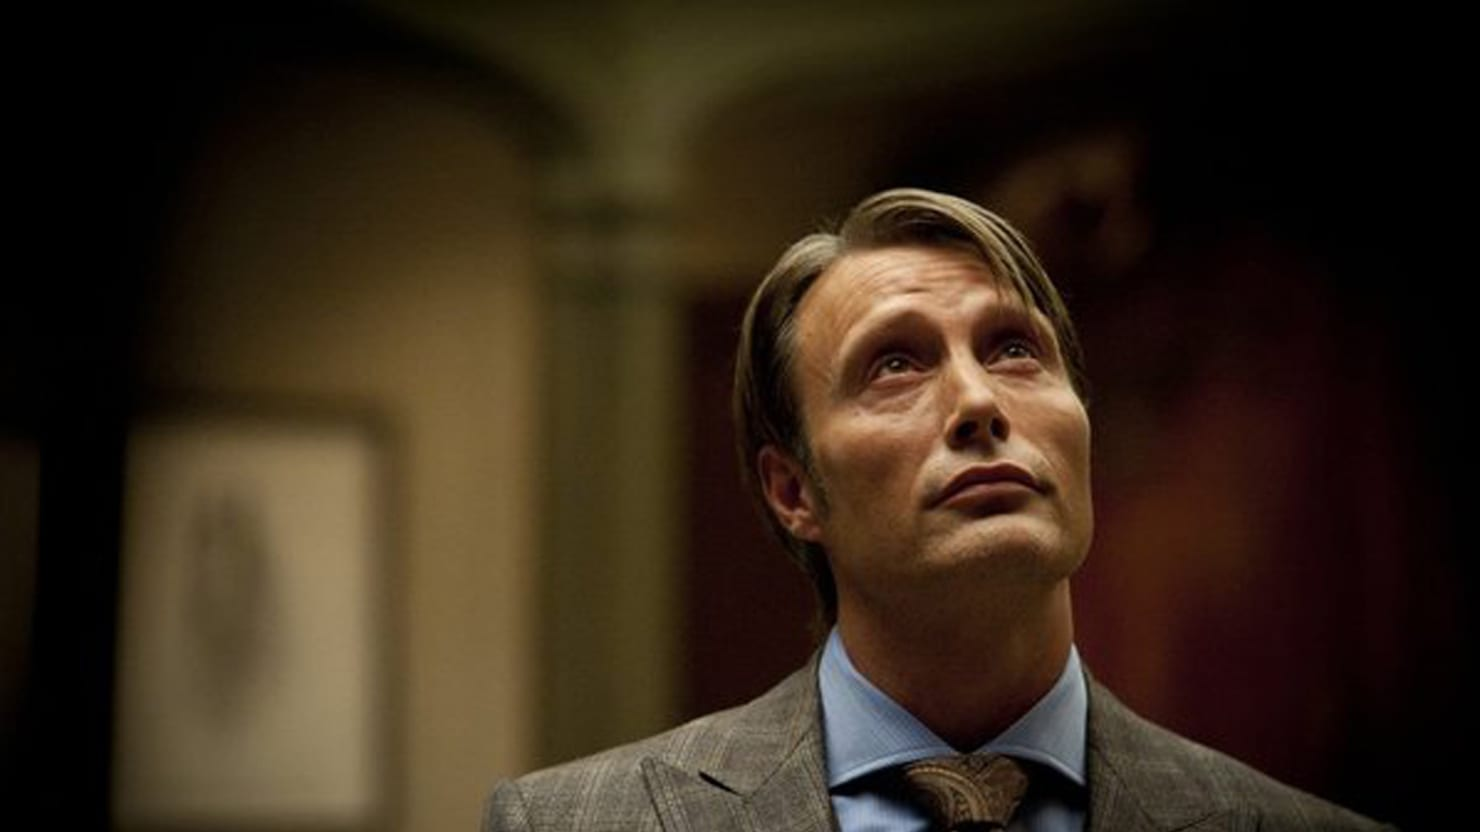 Mads Mikkelsen On Playing The Tasty New Hannibal Lecter